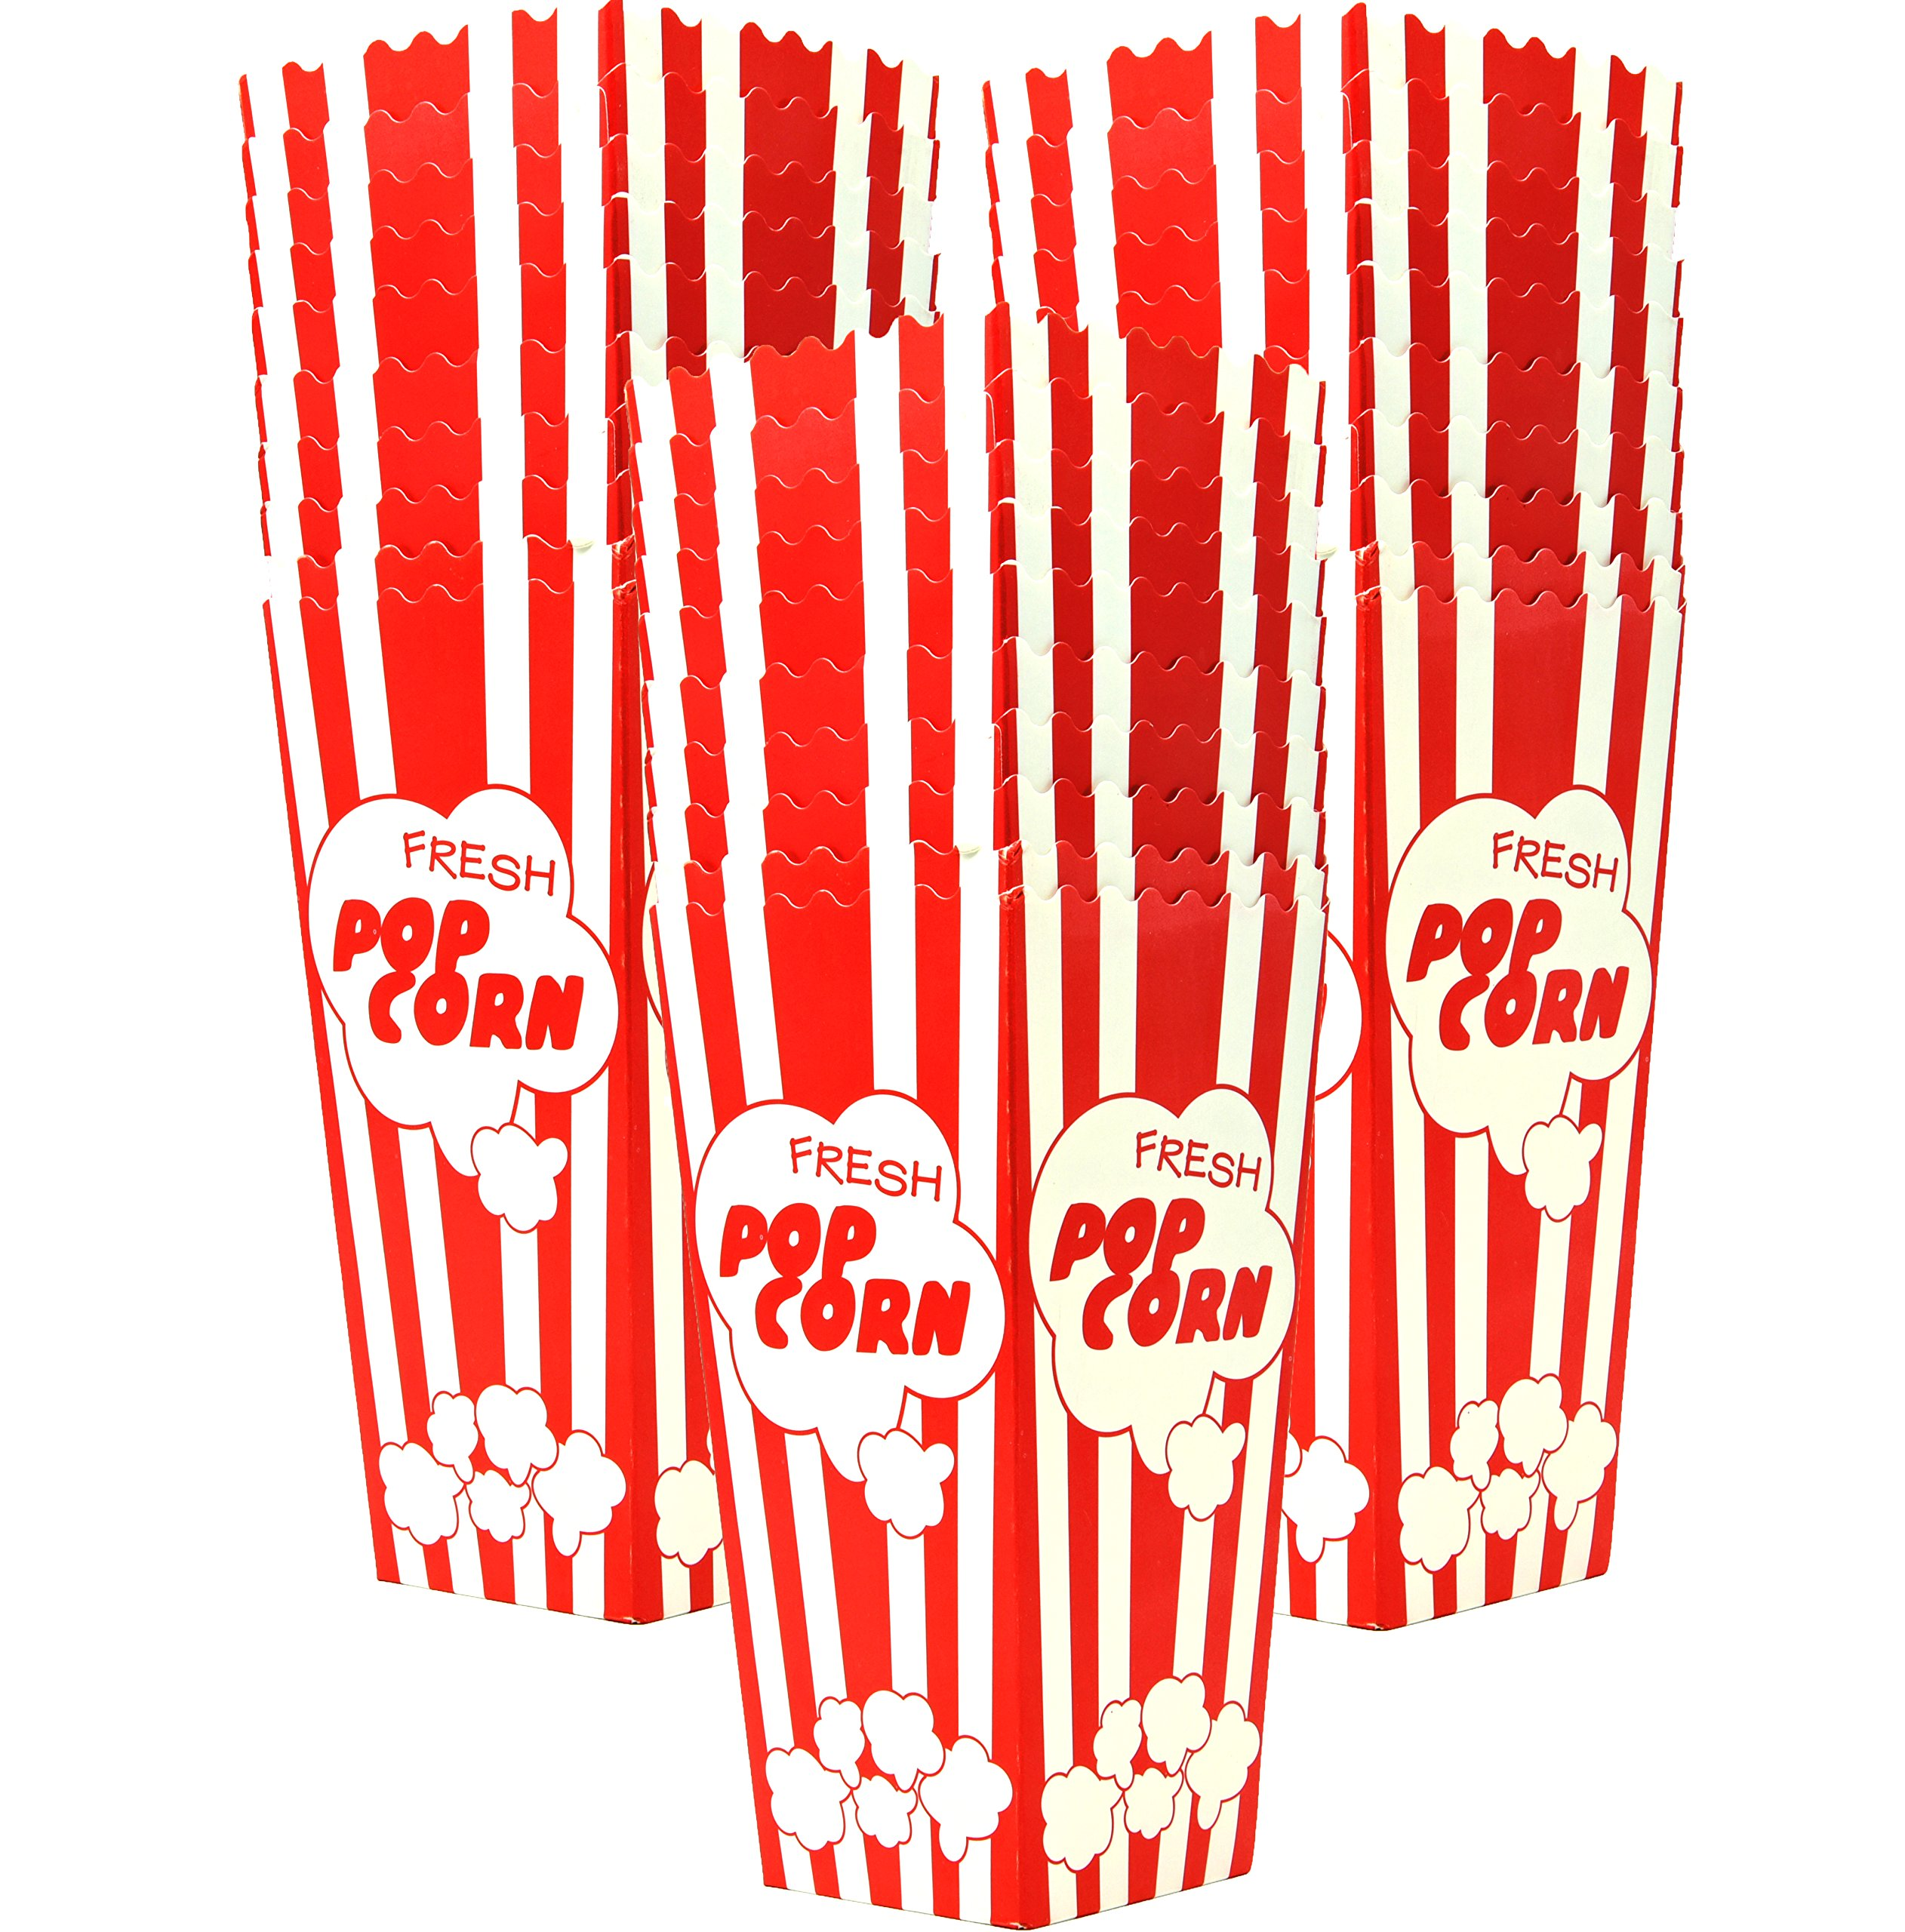 30 Popcorn Boxes, 7.75'' Inches Tall and Holds 46 Oz. with Old Fashion Vintage Retro Design with Red and White Colored, Nostalgic Carnival Stripes by Original Salbree